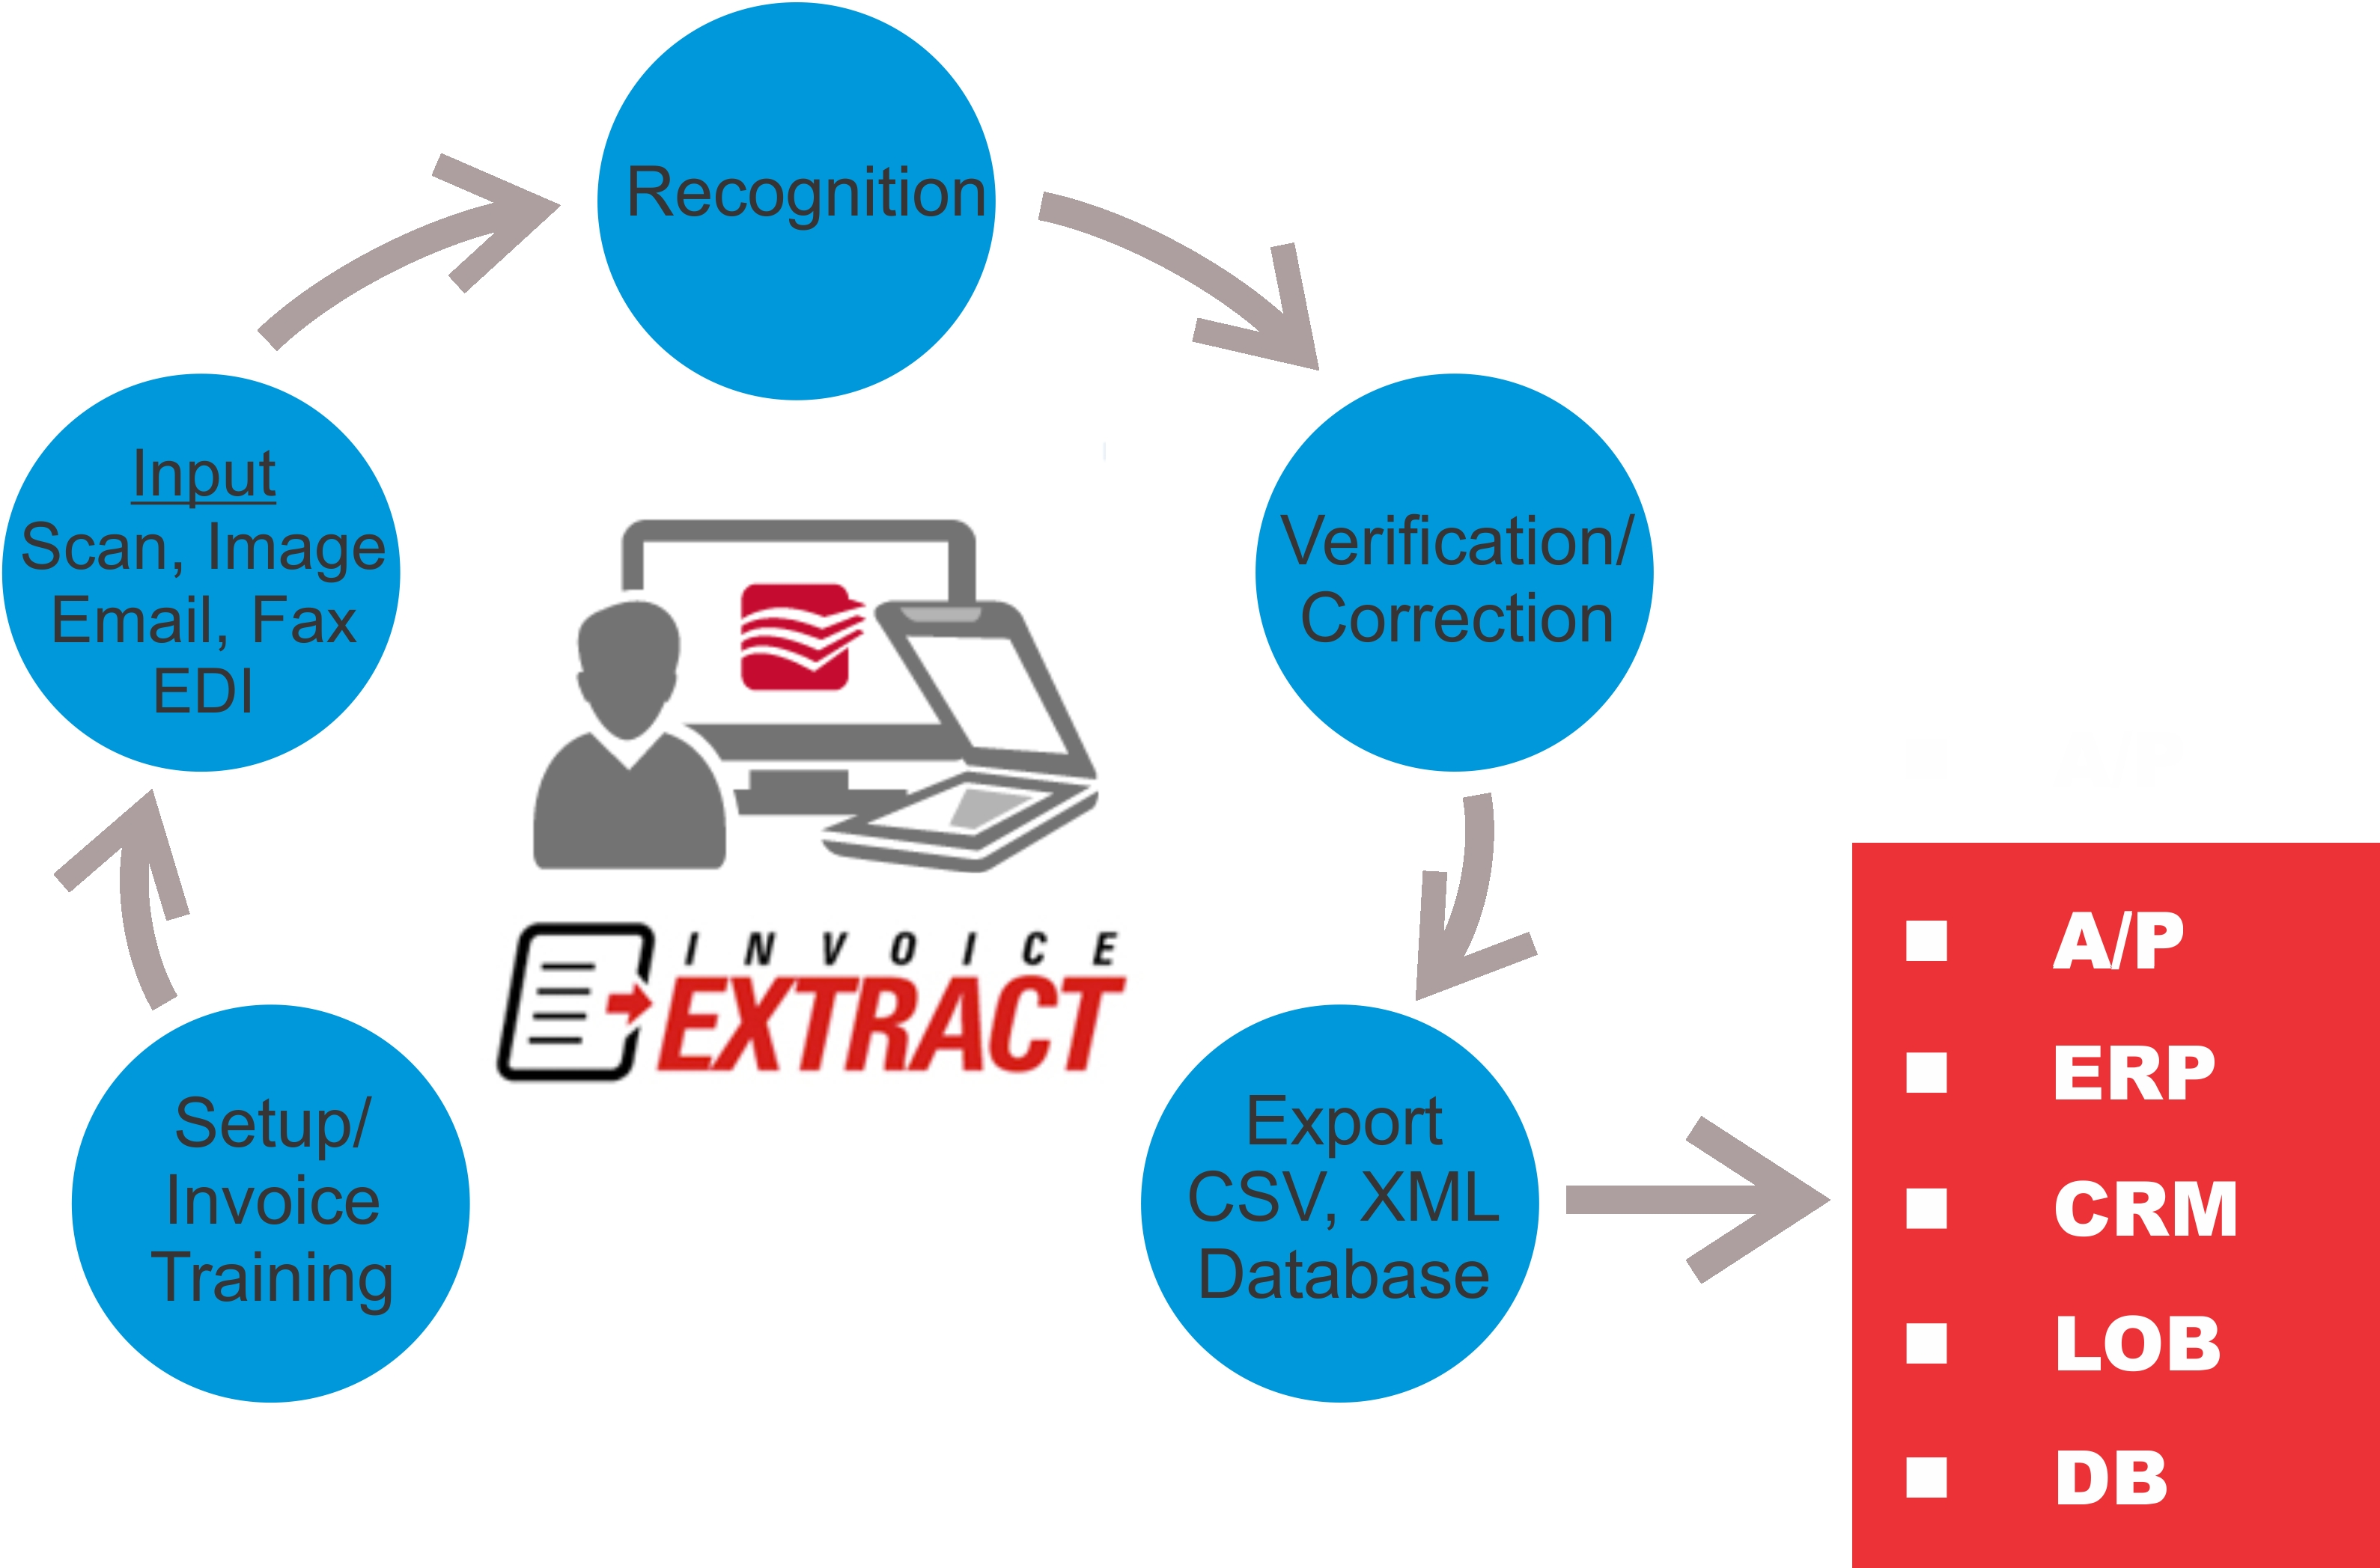 ocr invoice processing service vancouver electronic data capture paperless invoice processing